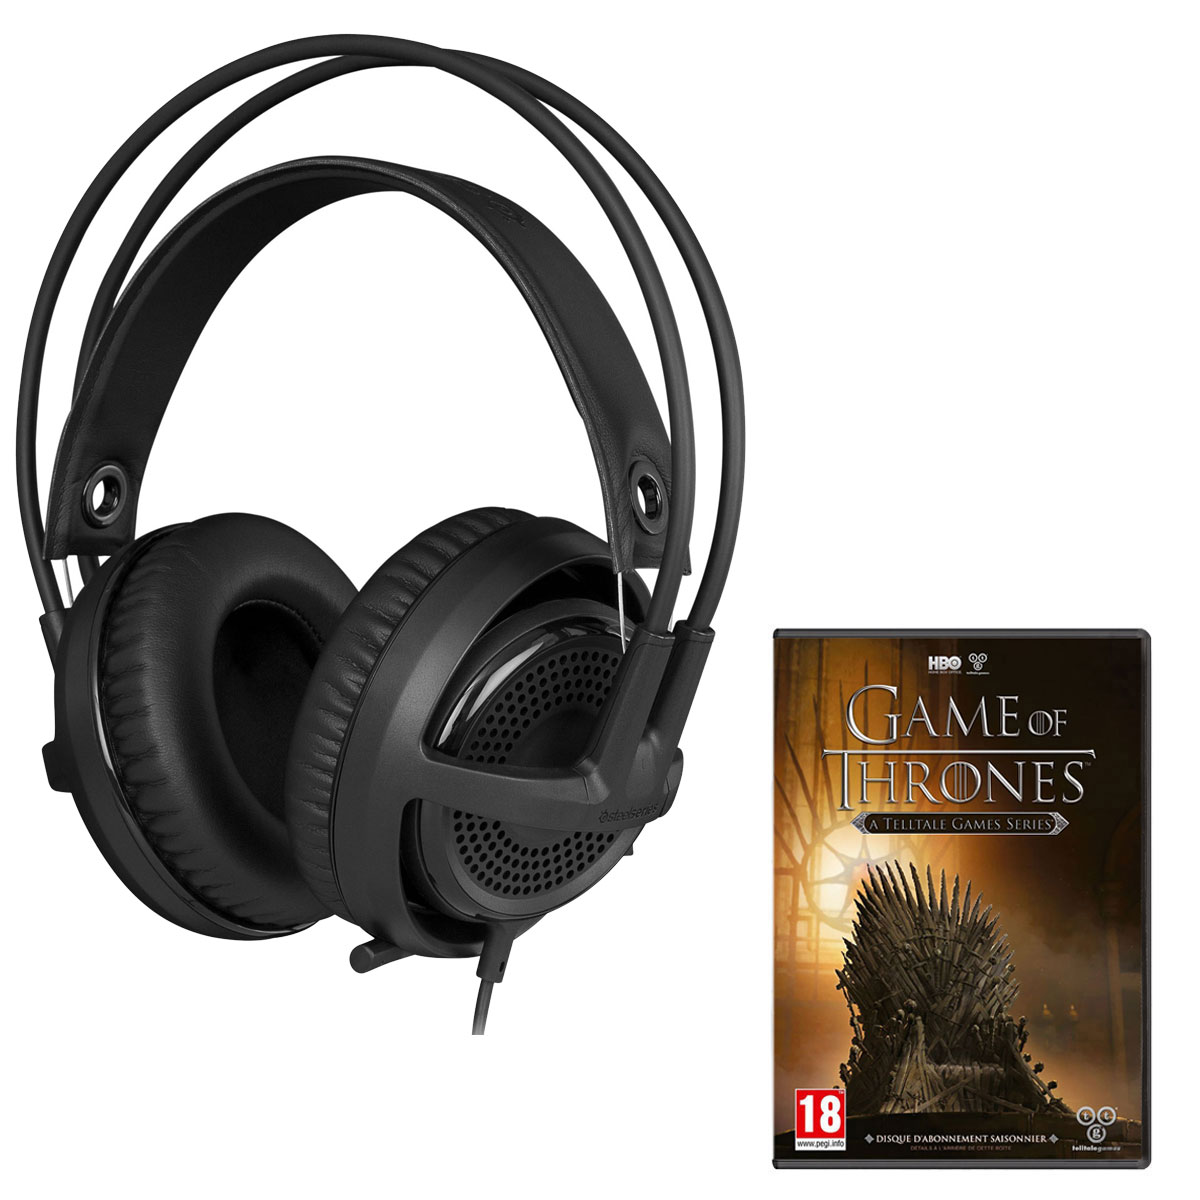 steelseries siberia v3 noir game of thrones pc offert micro casque steelseries sur ldlc. Black Bedroom Furniture Sets. Home Design Ideas